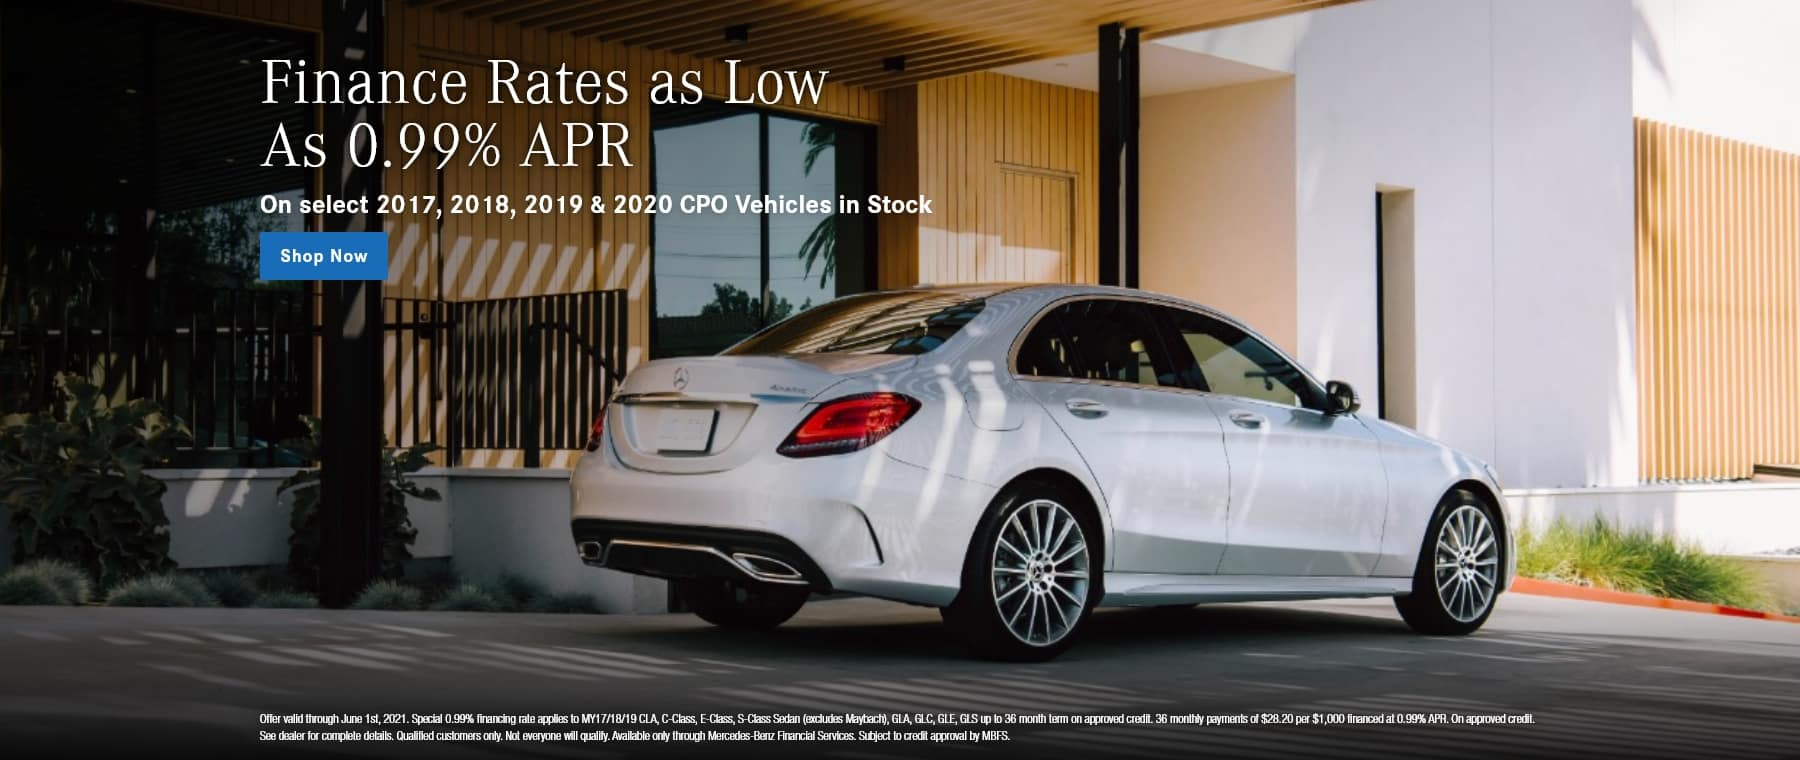 Finance rates as low as 0.99% APR